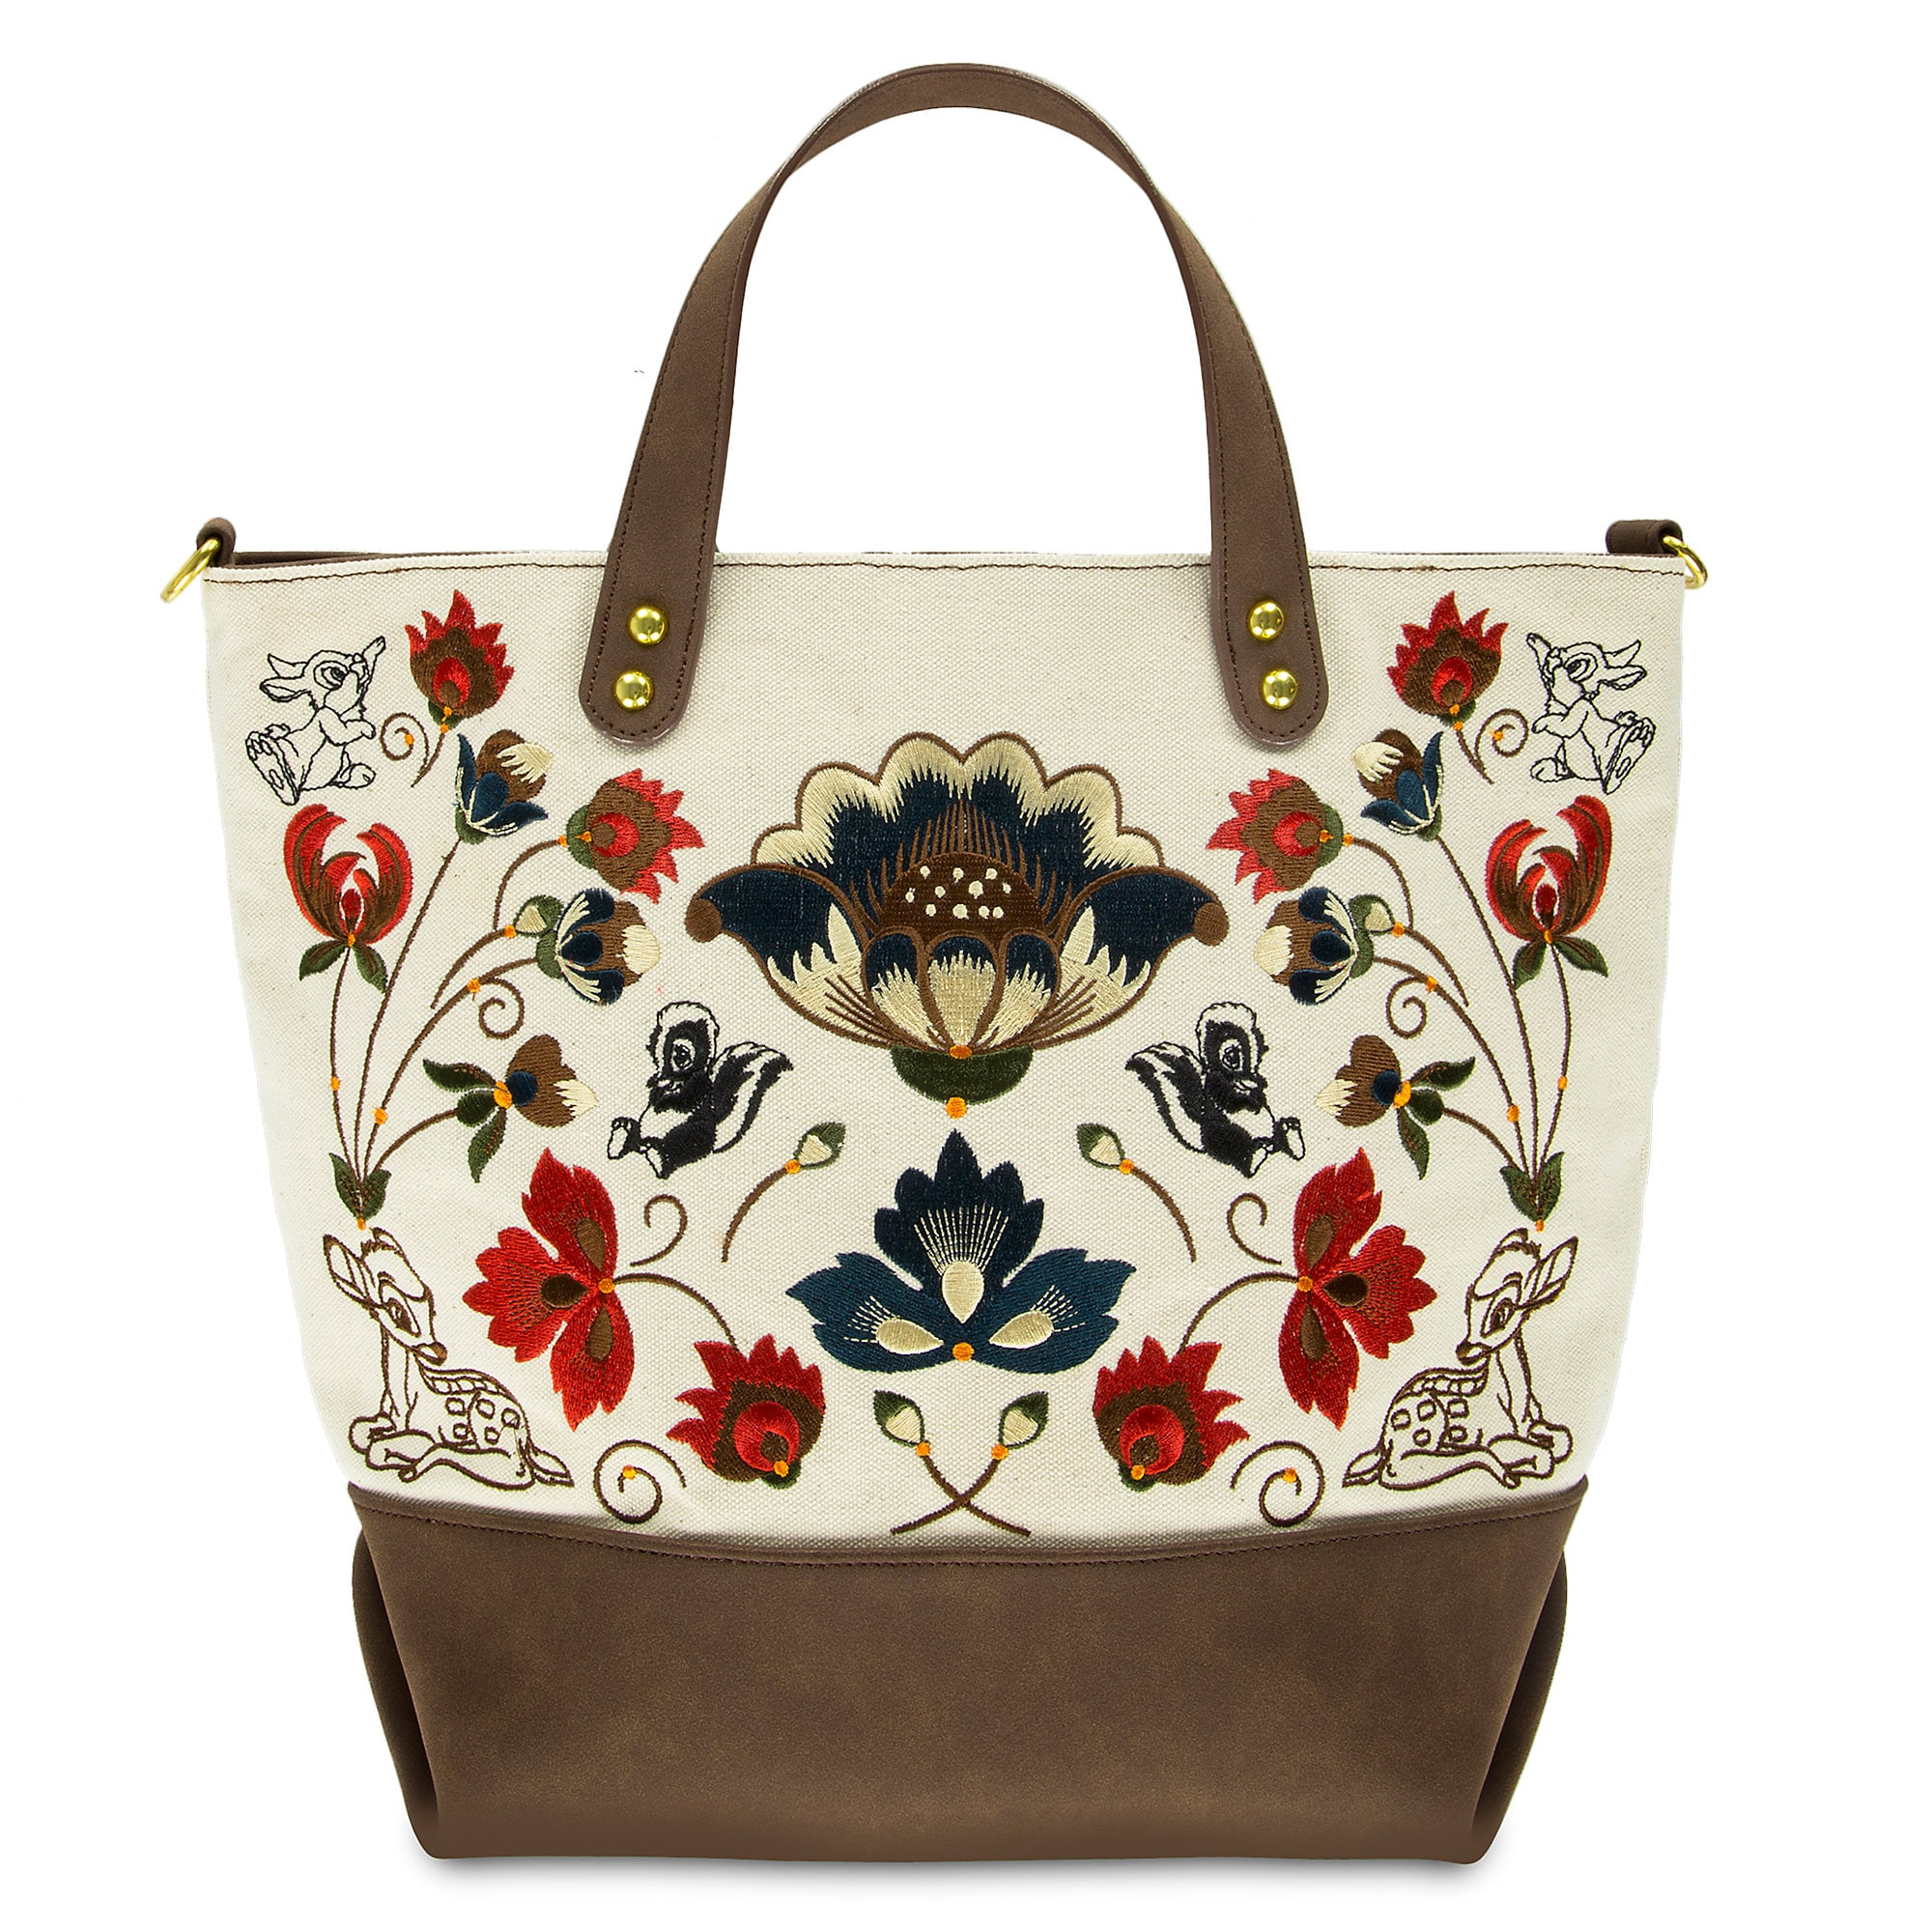 Bambi Embroidered Tote Bag by Disney Boutique